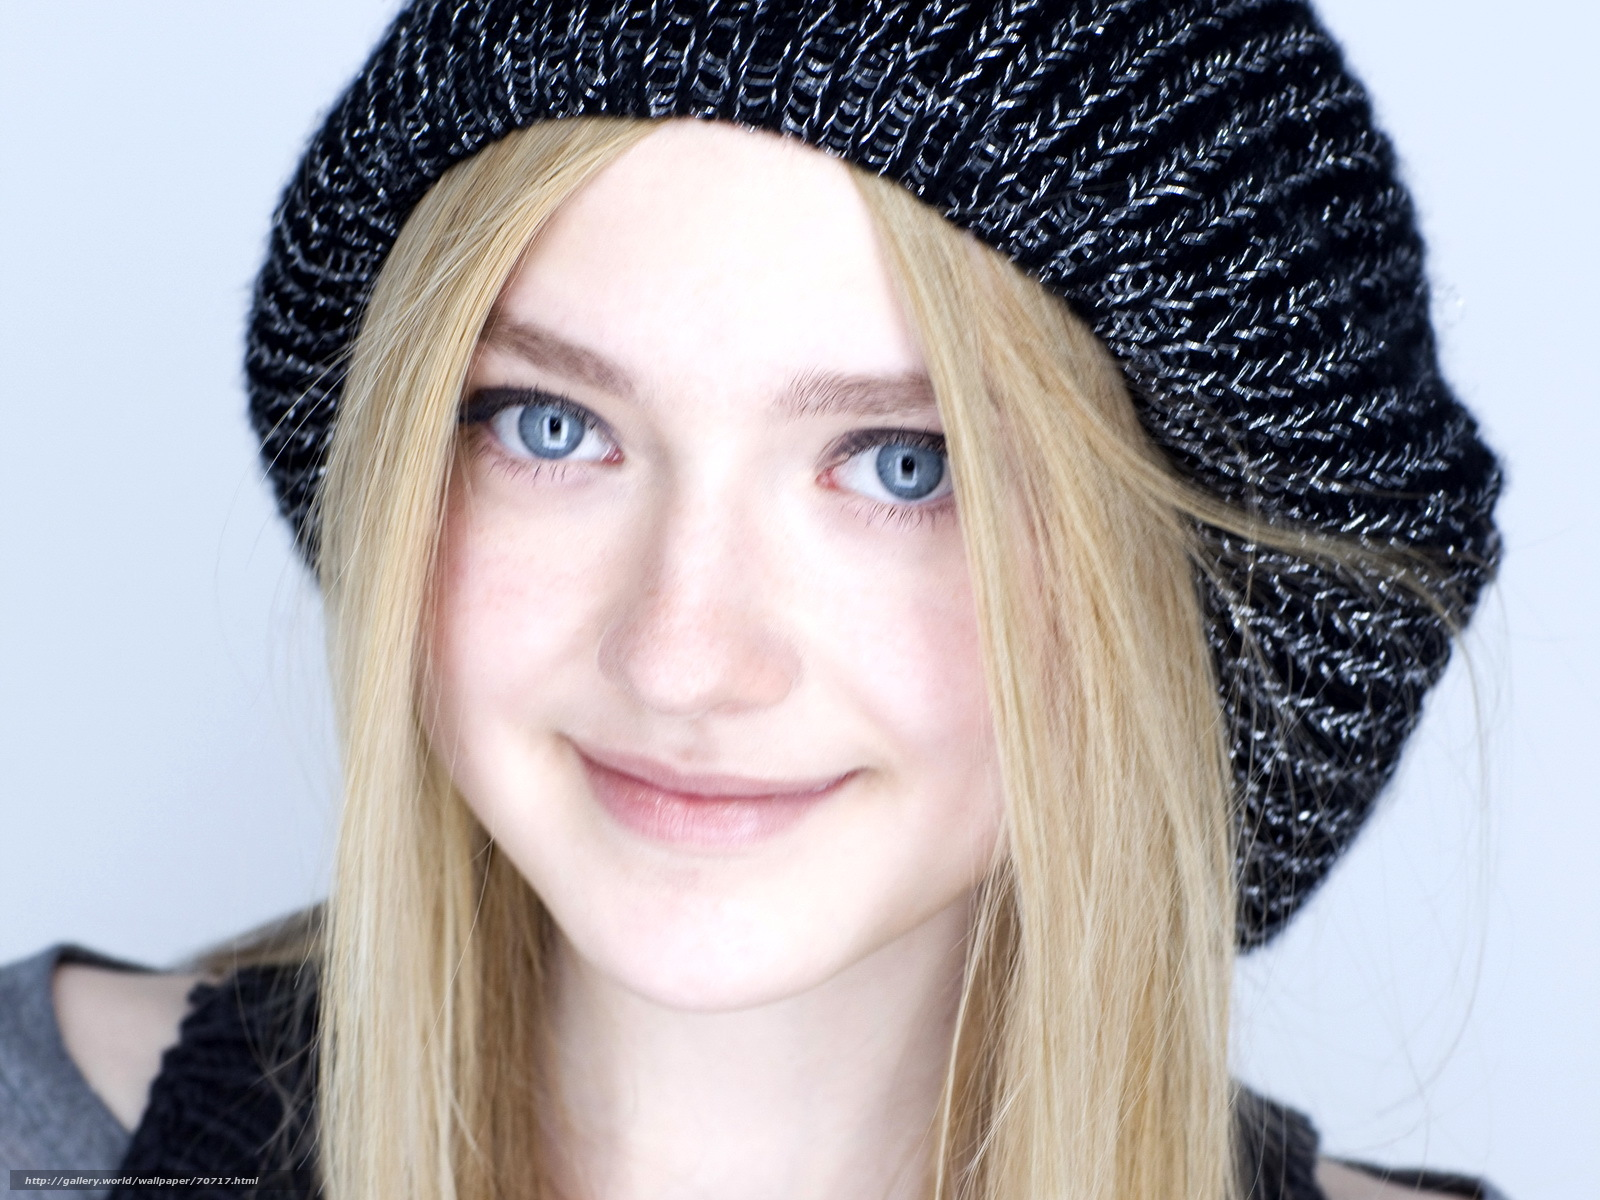 http://allwallpaper00.blogspot.com/2012/10/dakota-fanning-good-wallpaper.html